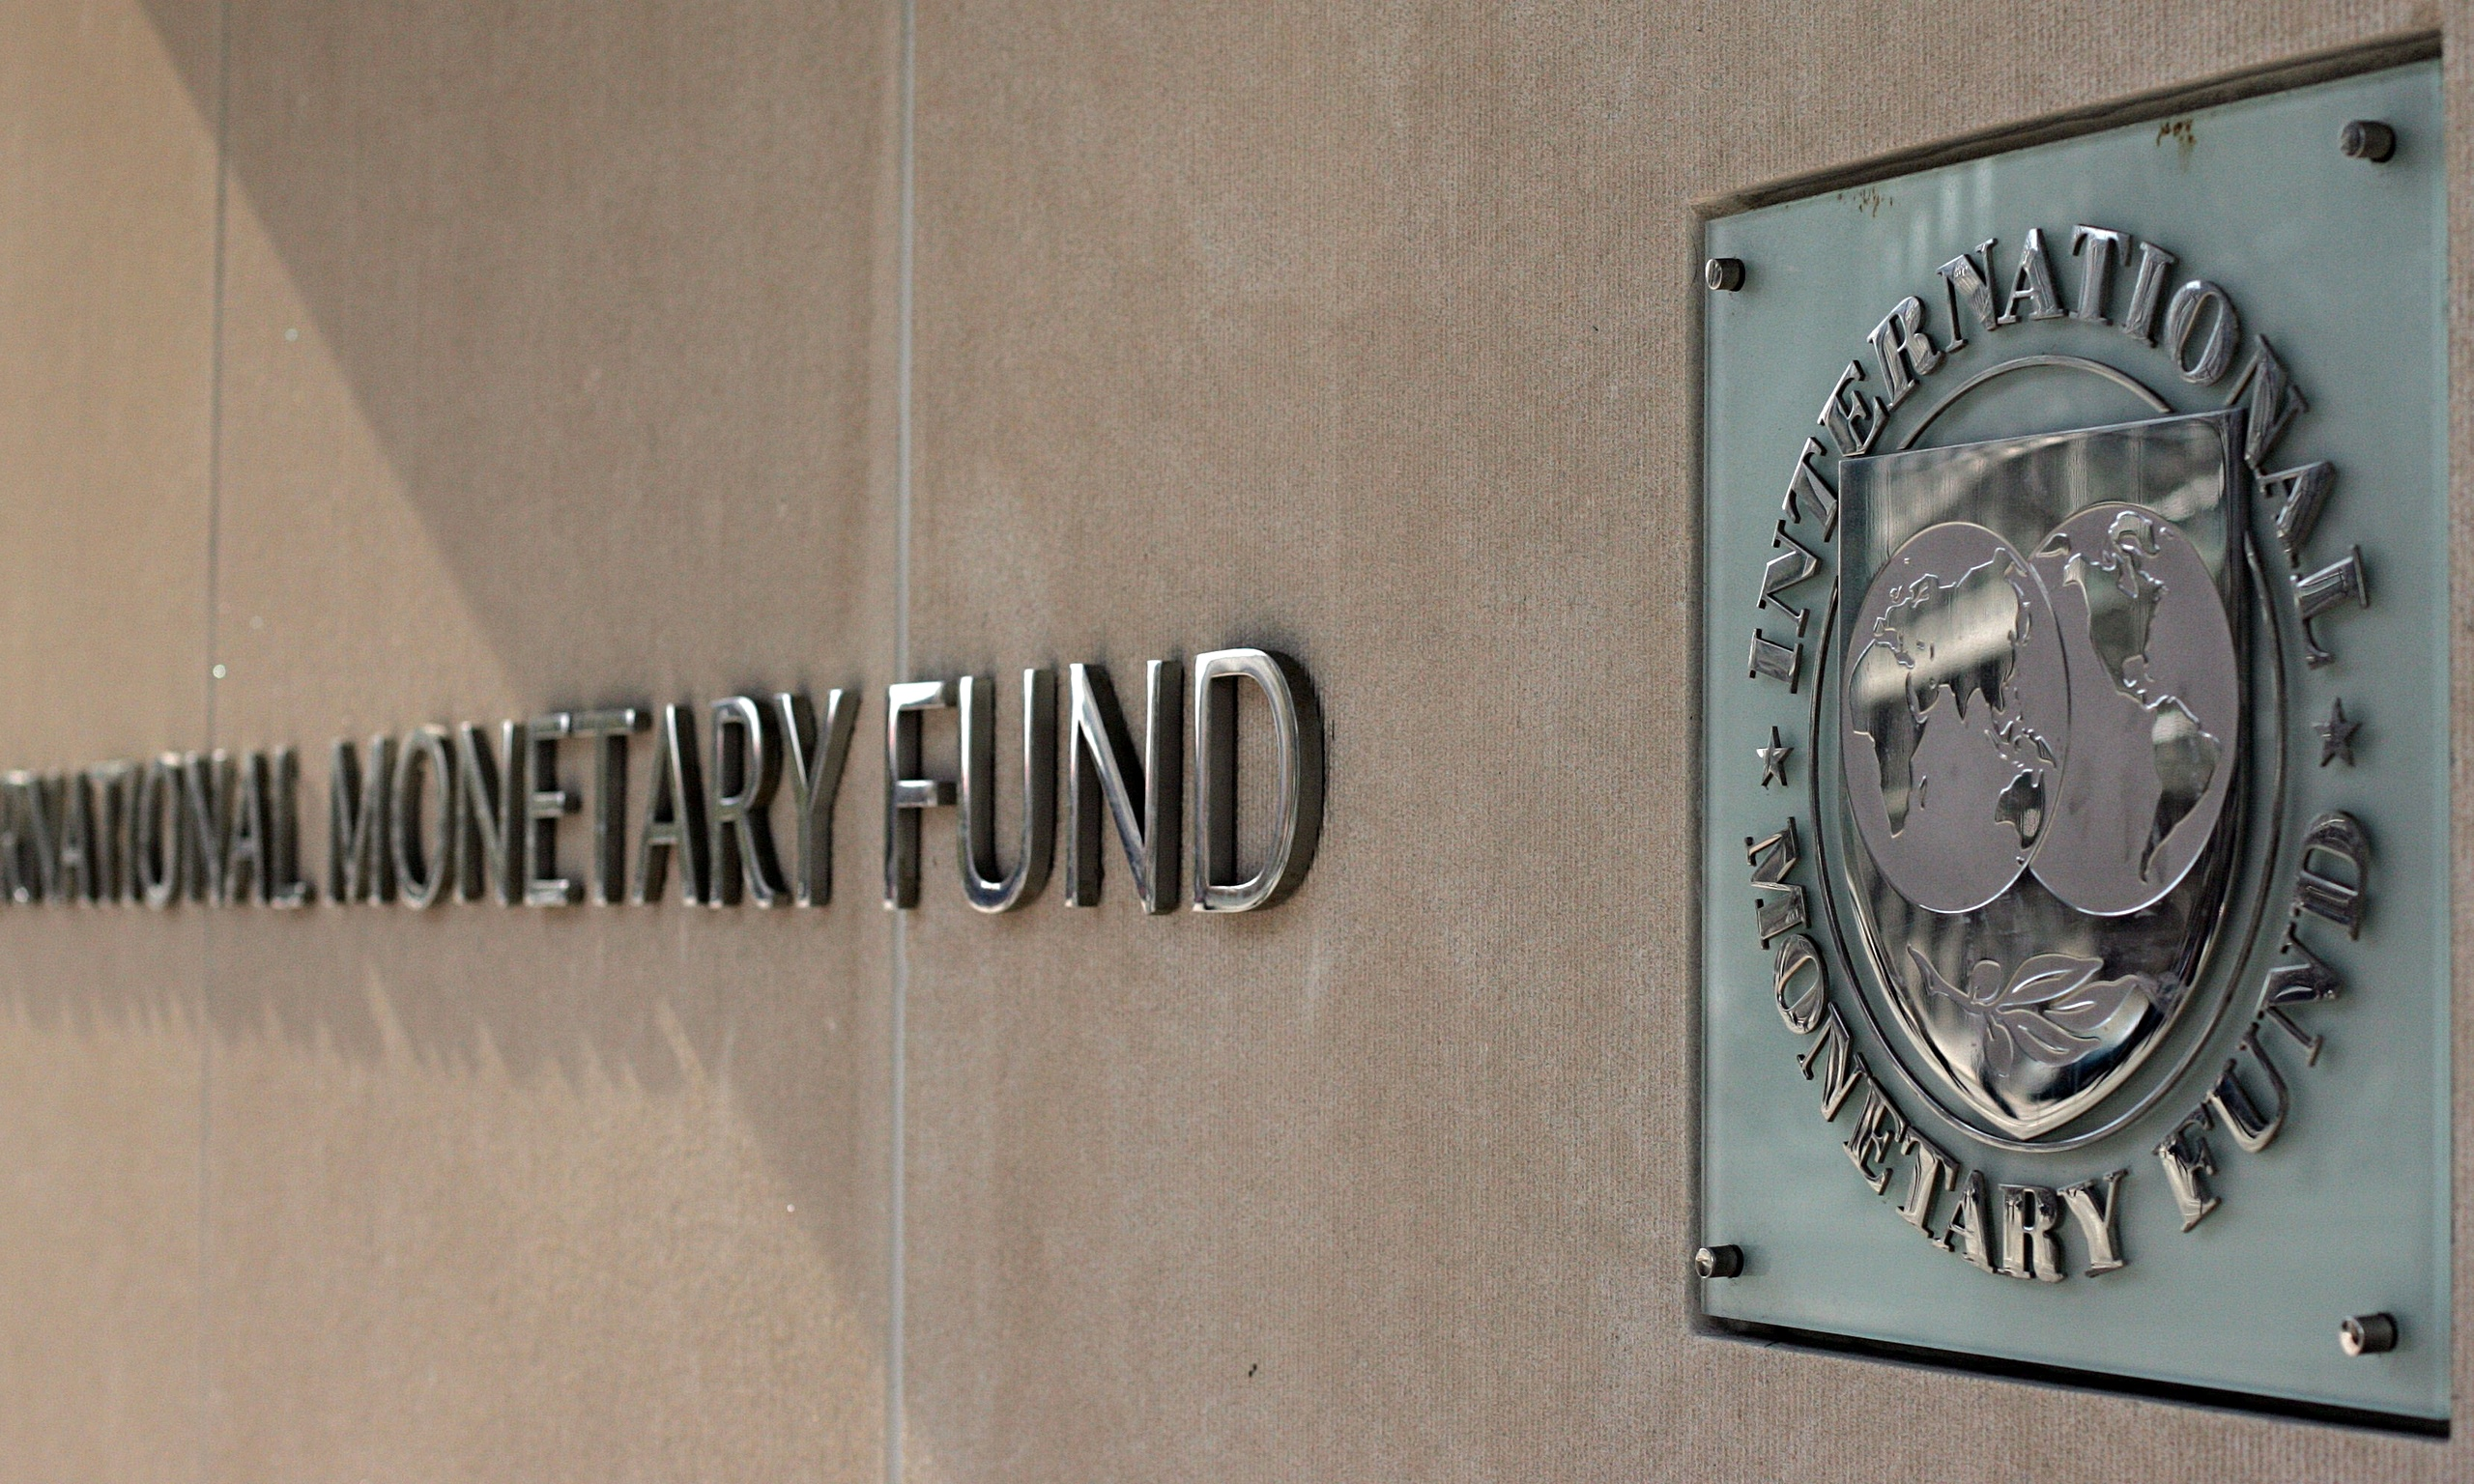 IMF leaves the negotiations